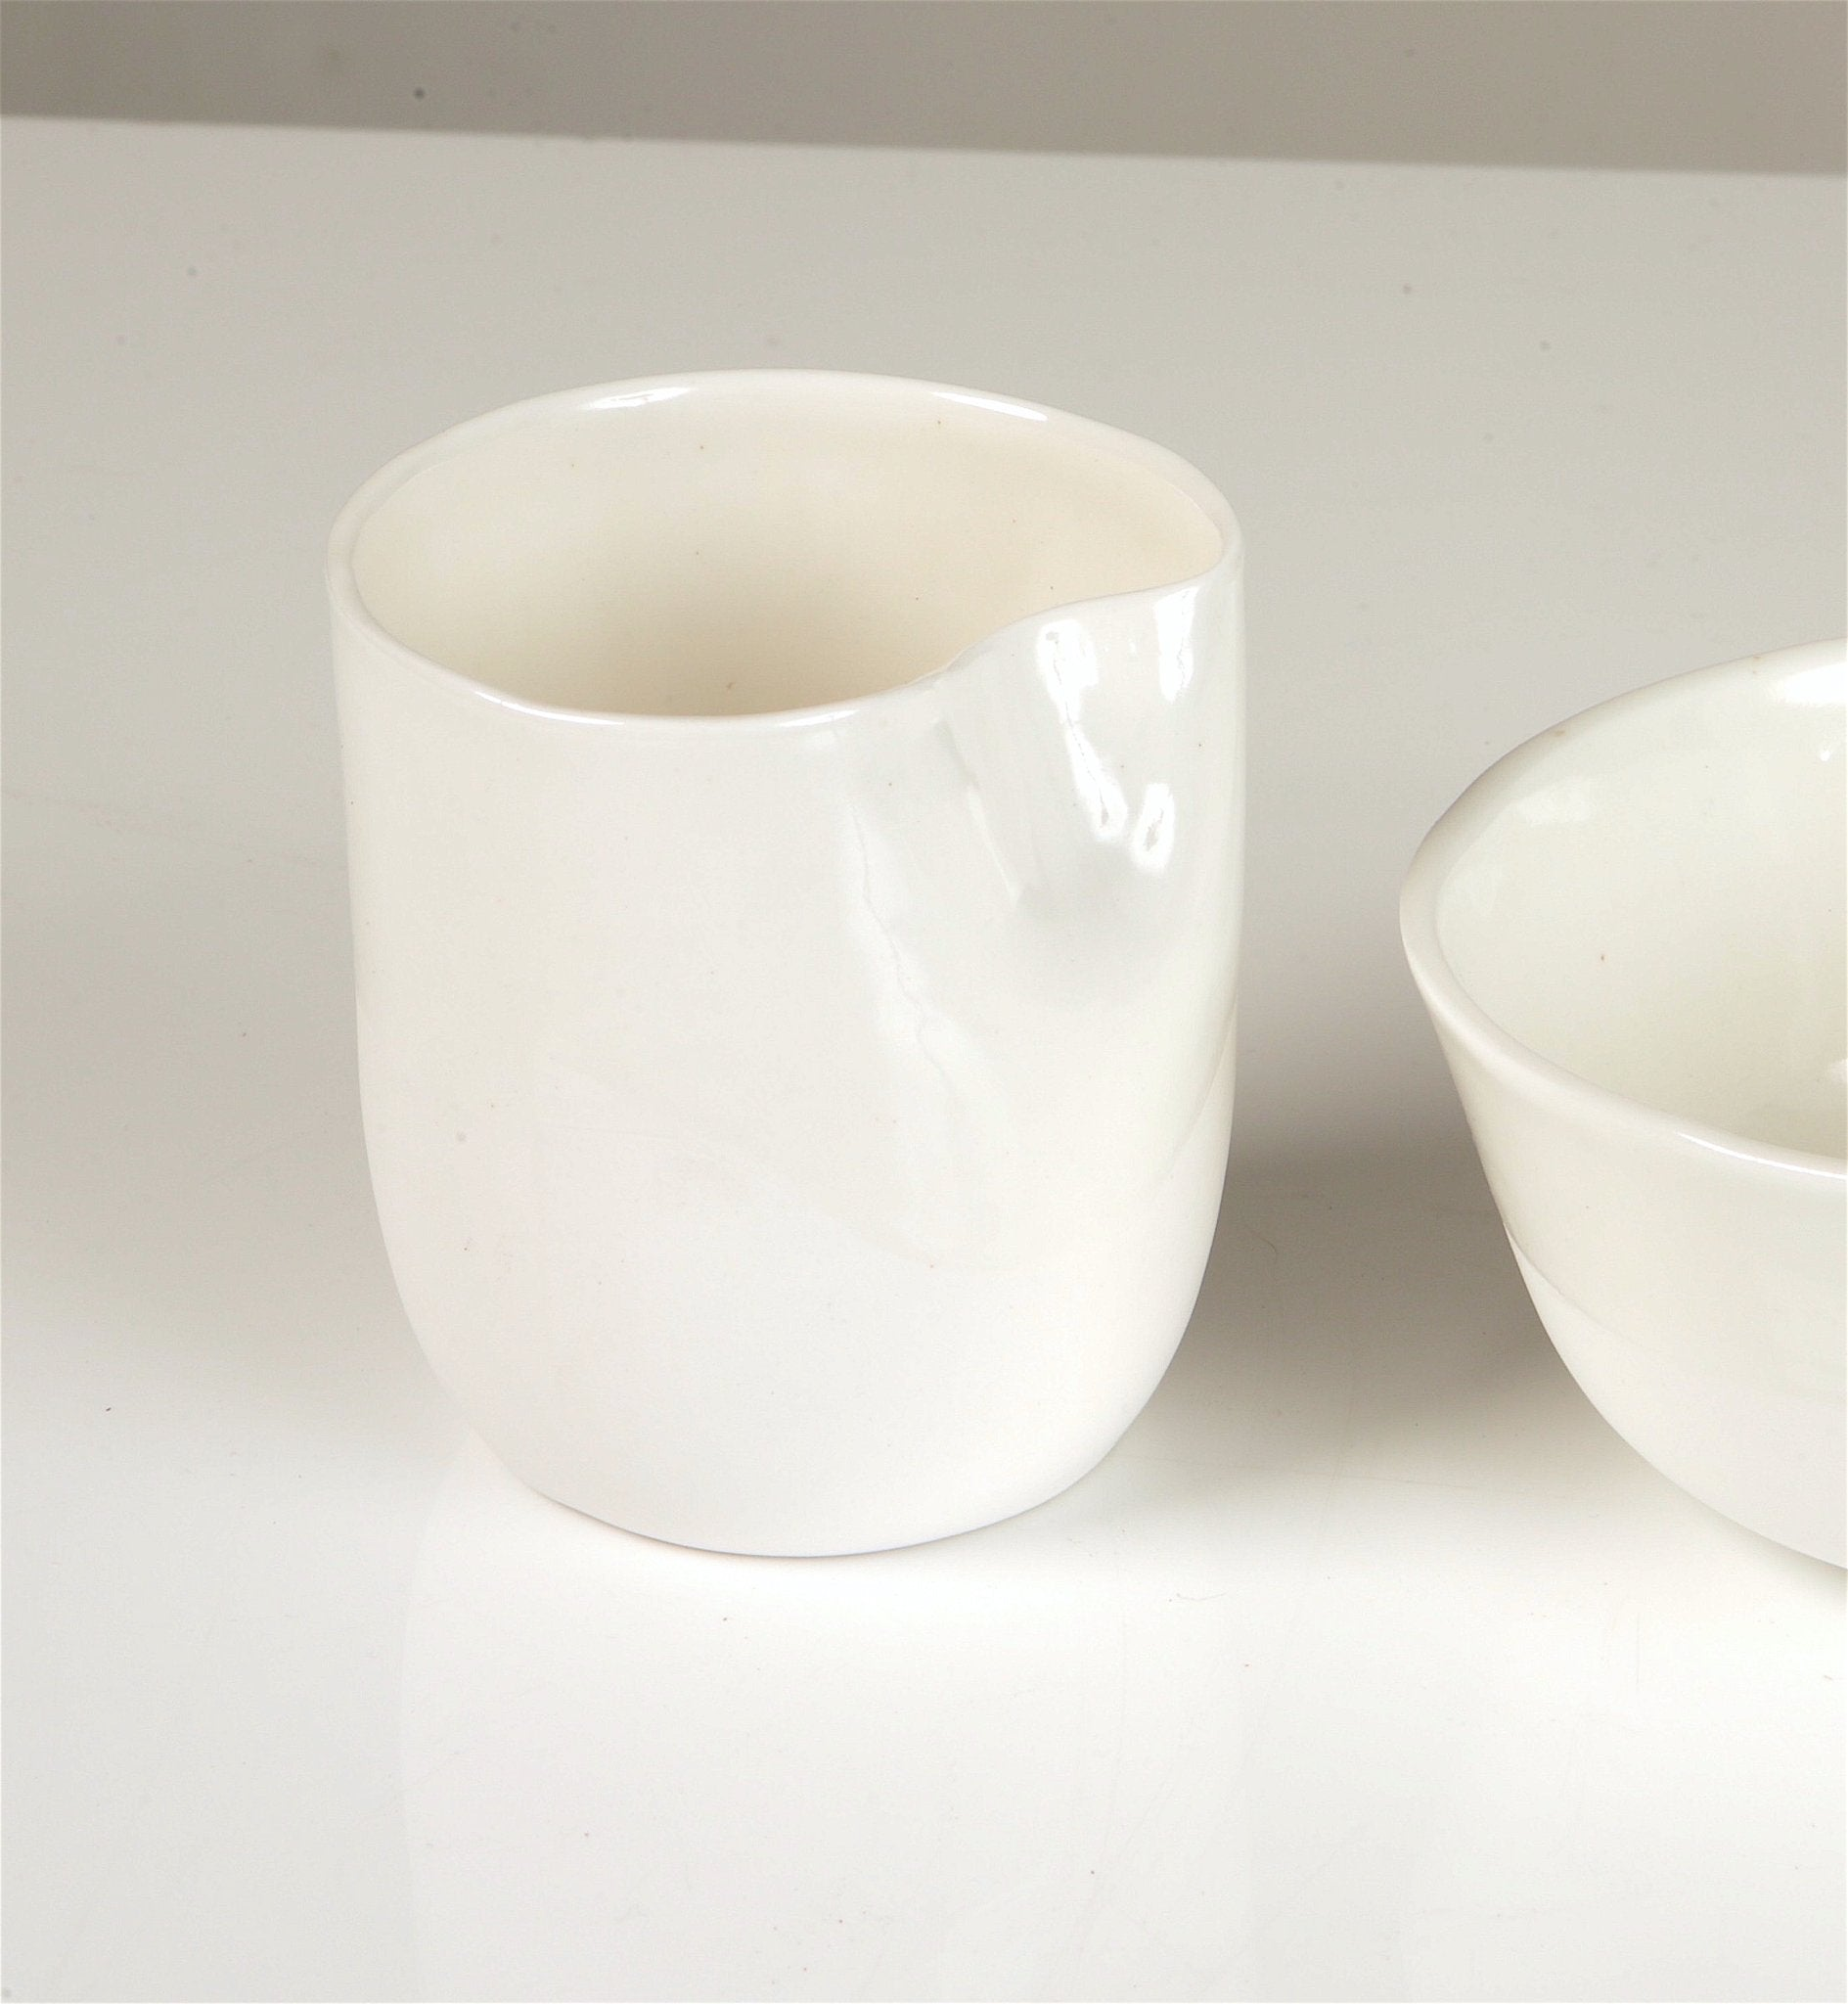 Fine bone china cup, coffee mug